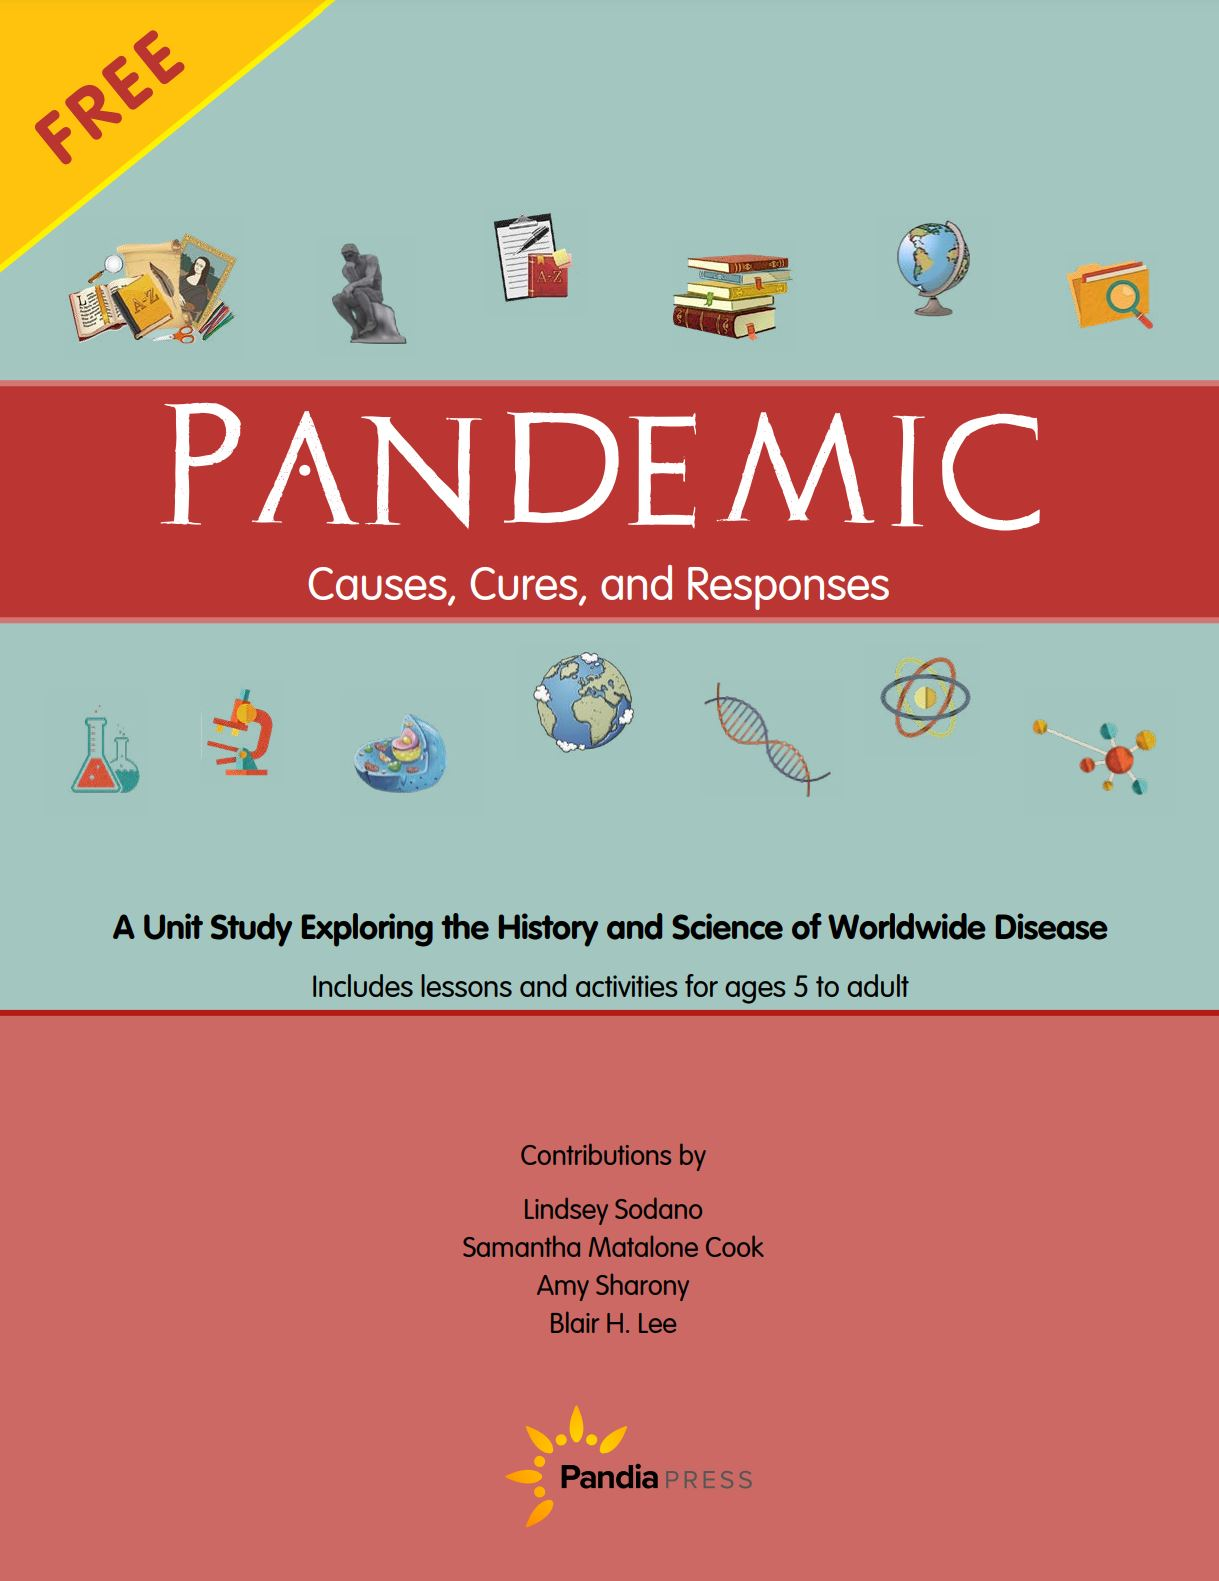 Pandemic, Causes, Cures, and Responses from Pandia Press review by Secular Homeschooler - a unit study exploring the history and science of worldwide disease. Includes lessons an activities for ages 5 to adult.